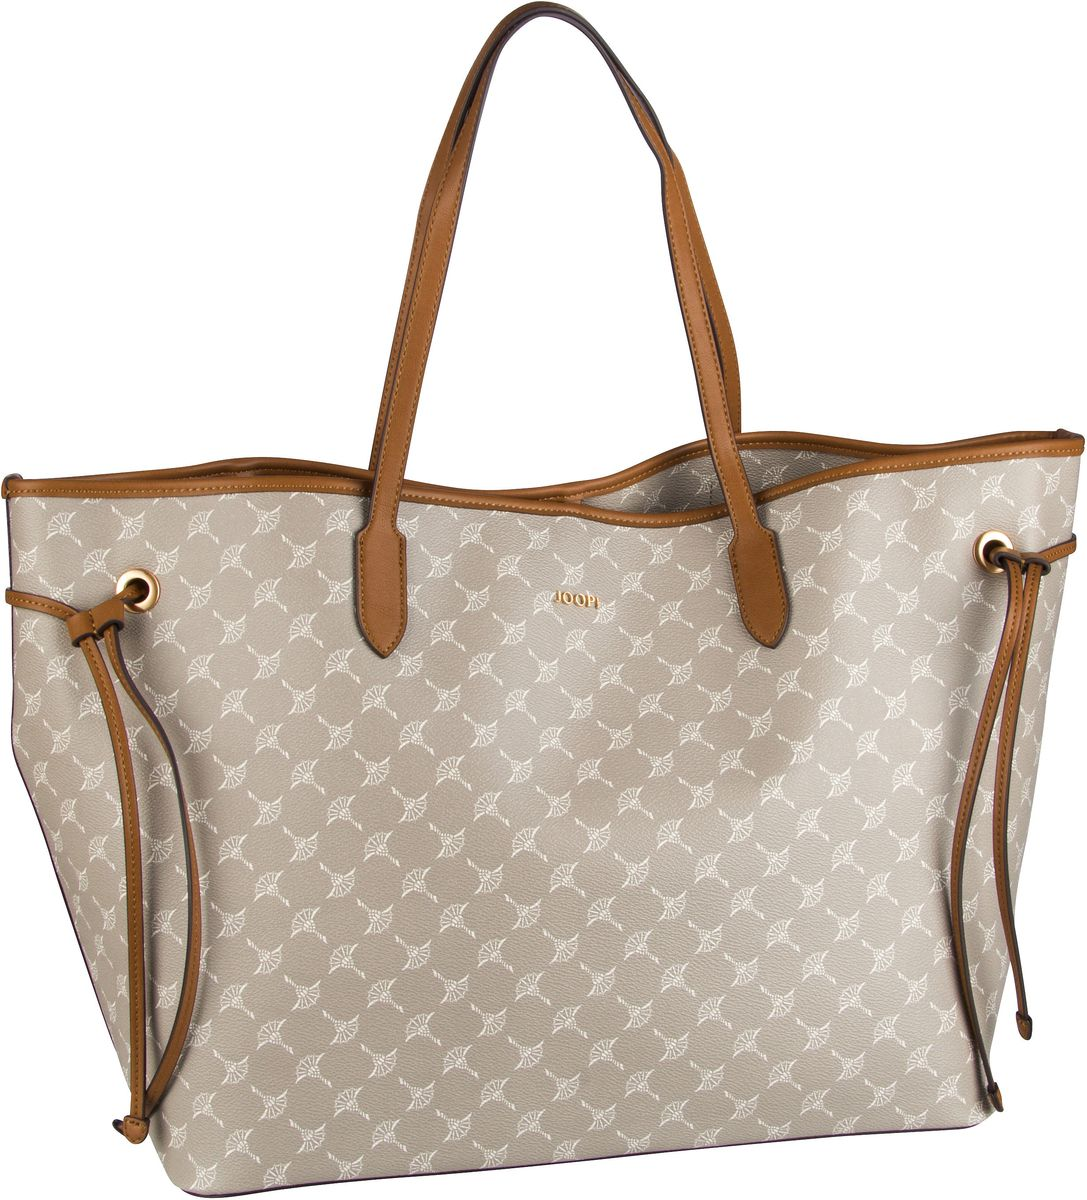 Handtasche Lara Cortina Shopper Large Beige